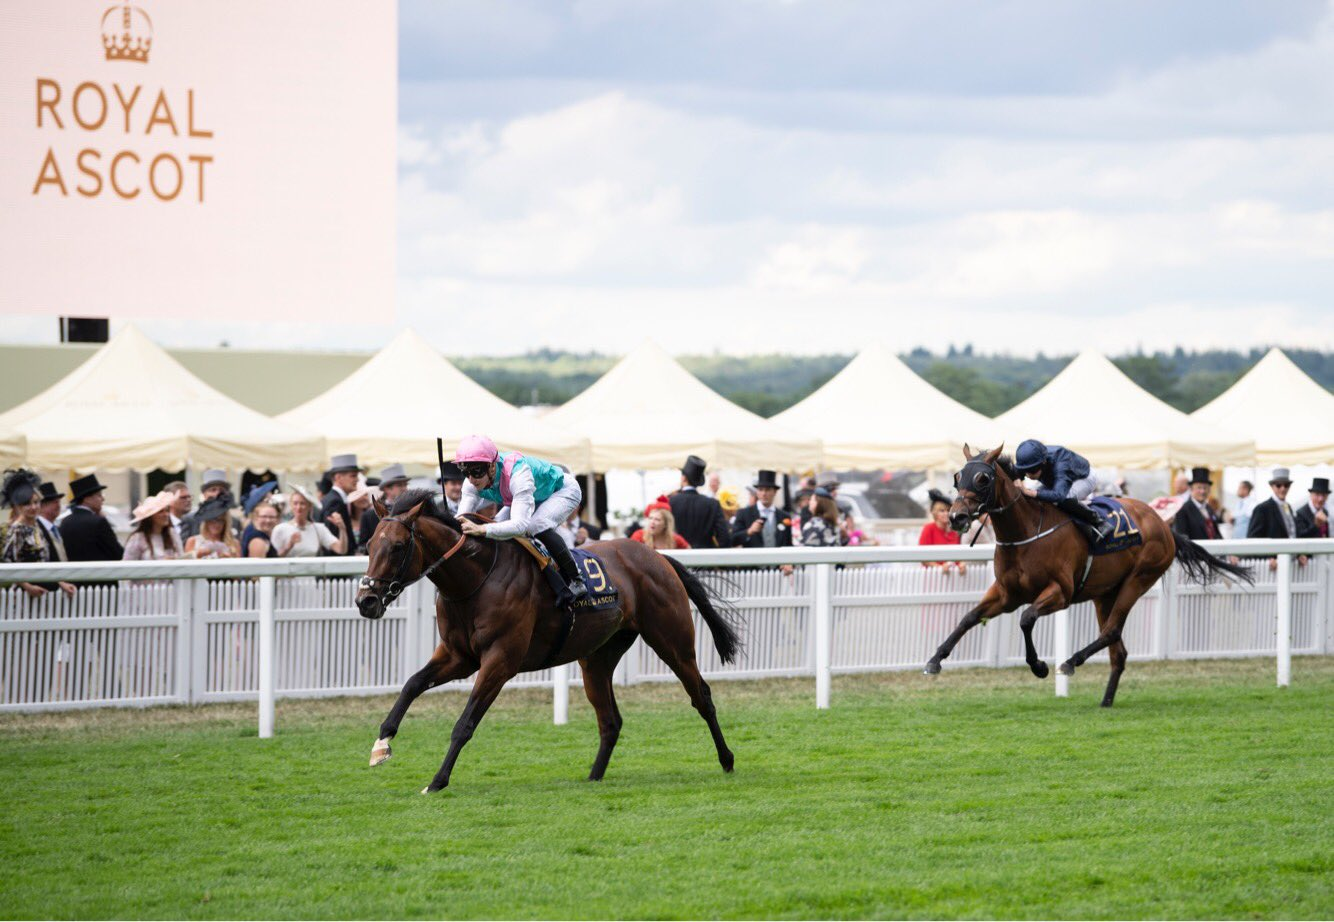 JERSEY STAKES (GR3) - Expert Eye refait surface